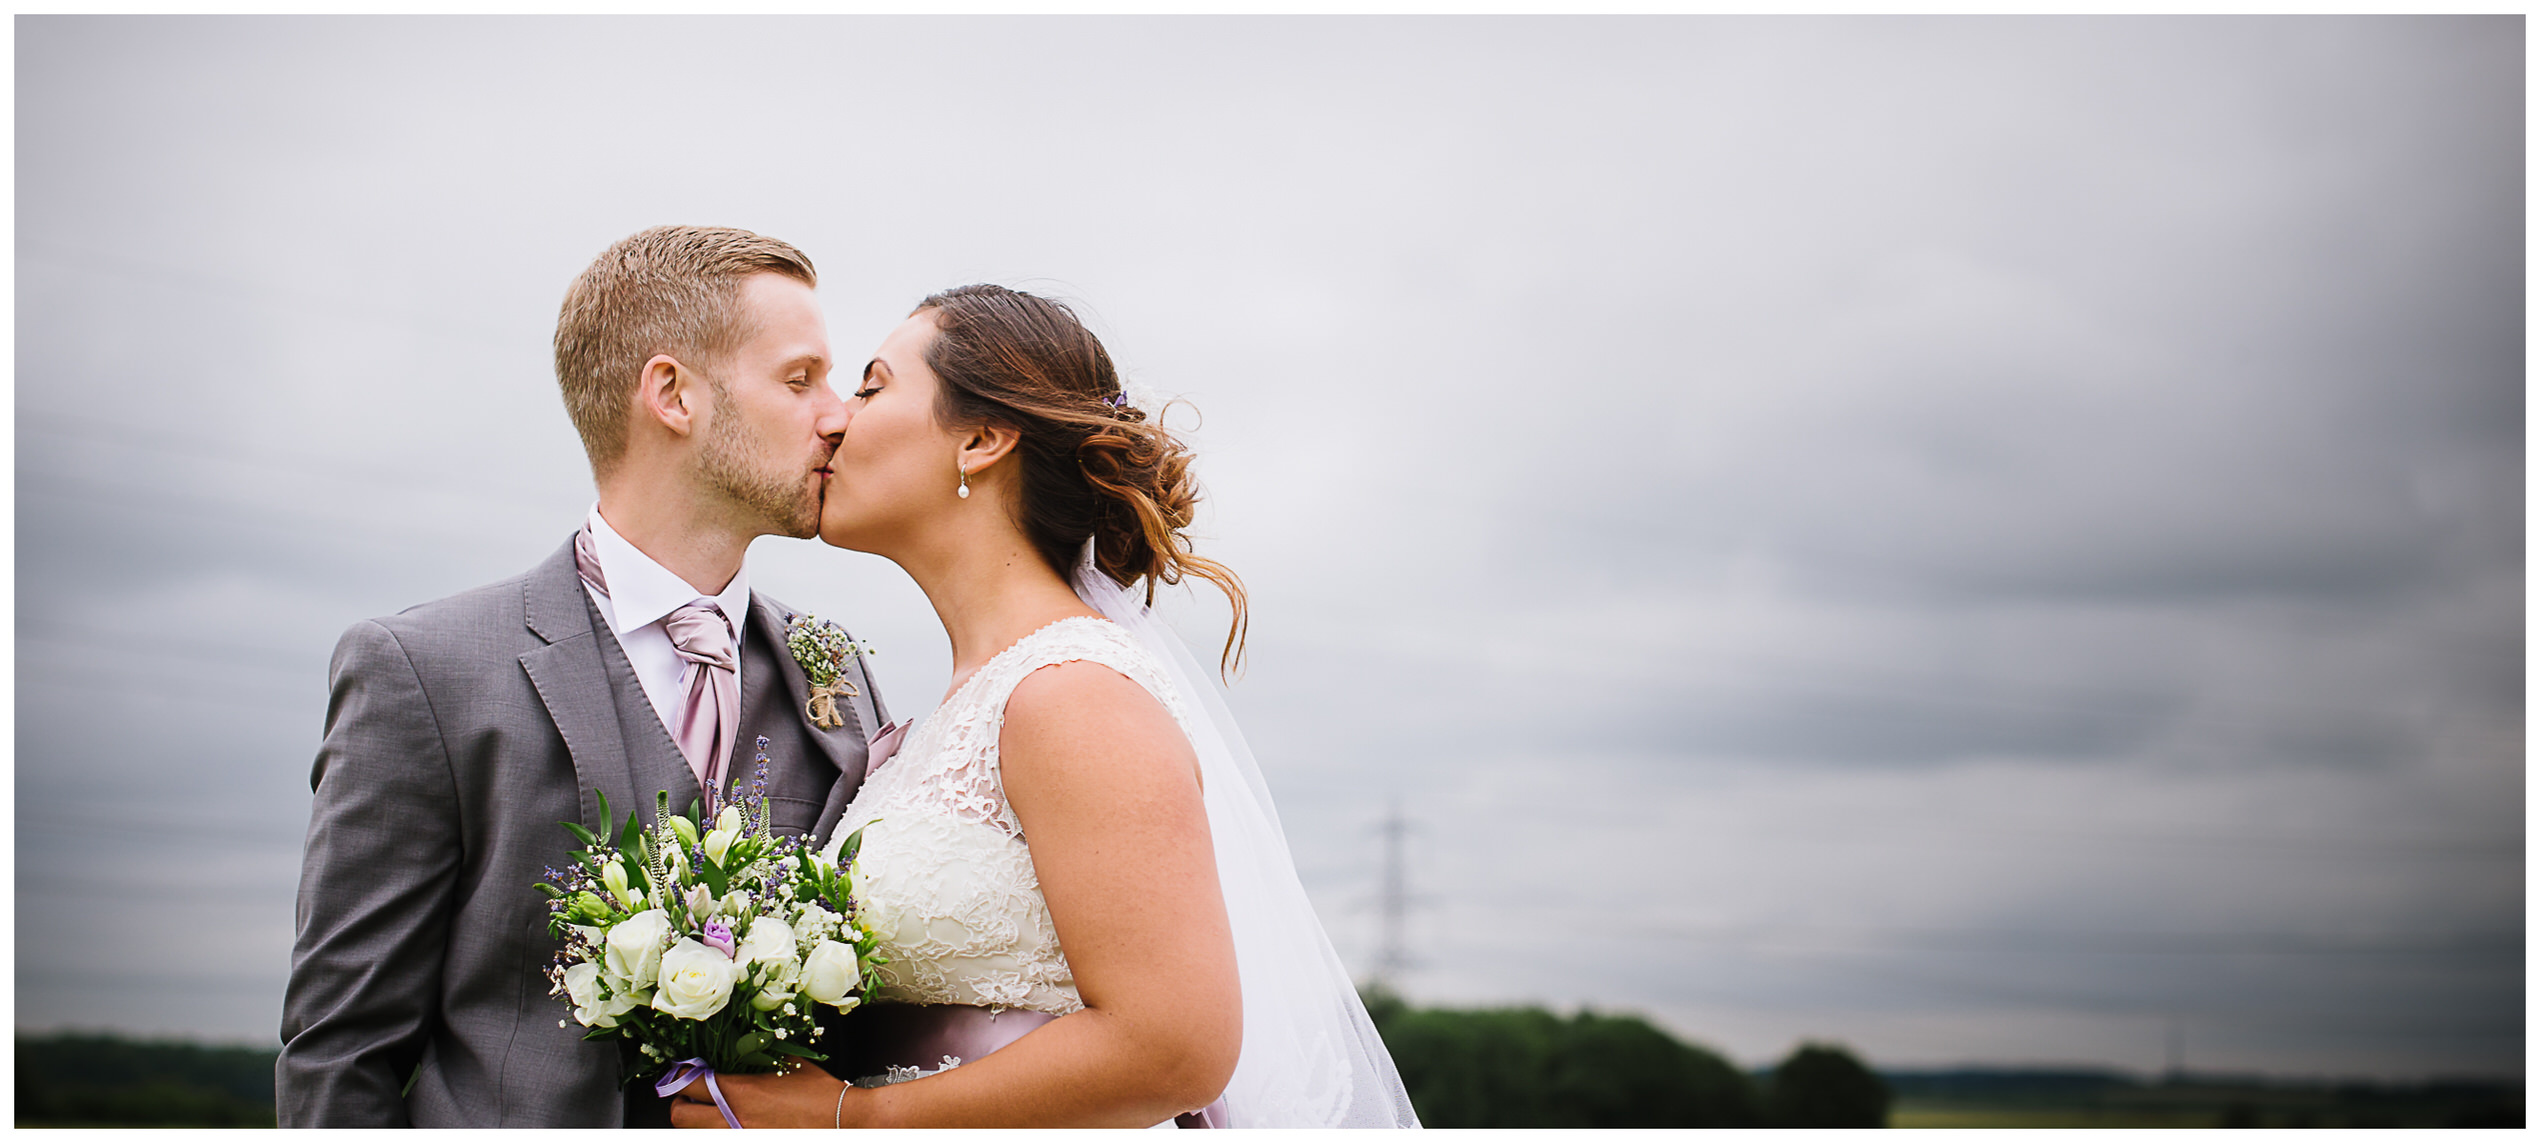 First kiss between bride and groom at their milling barn wedding